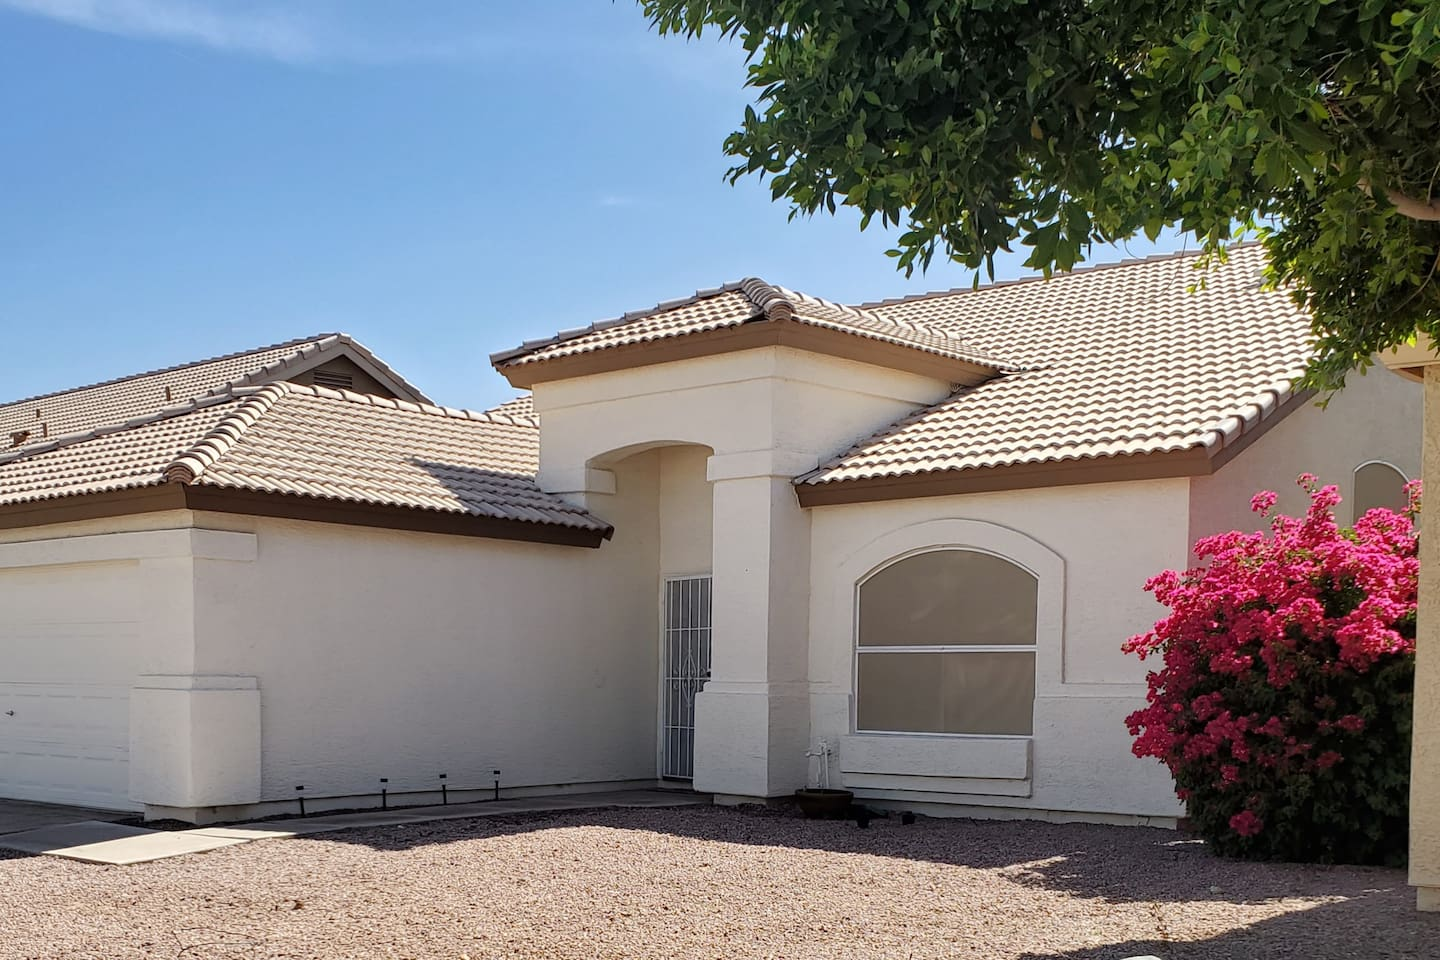 Pool home with nice patio in Chandler!